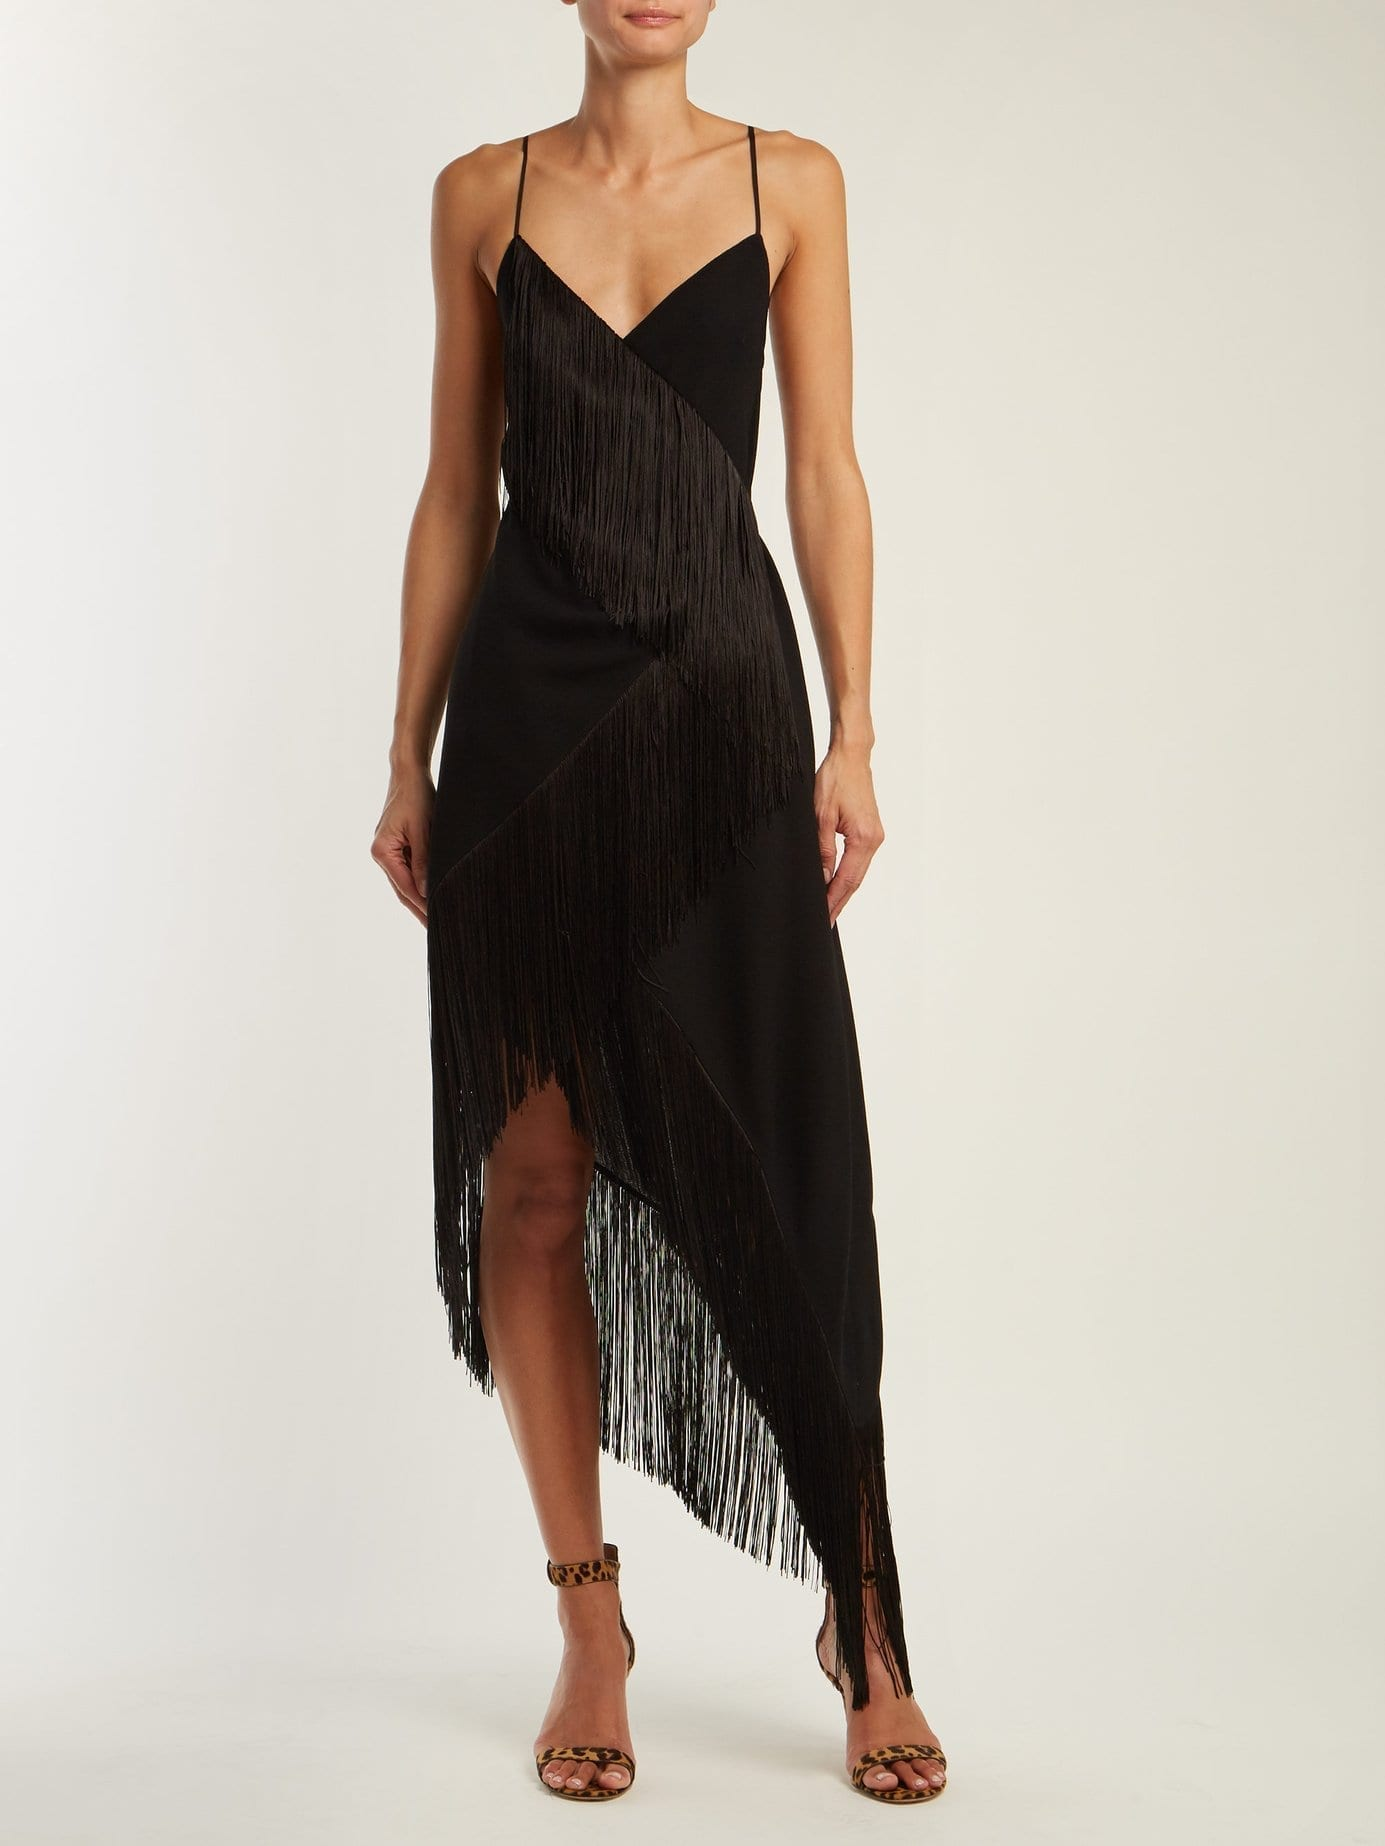 GIVENCHY Fringed Asymmetric Hem Wool Crepe Black Dress